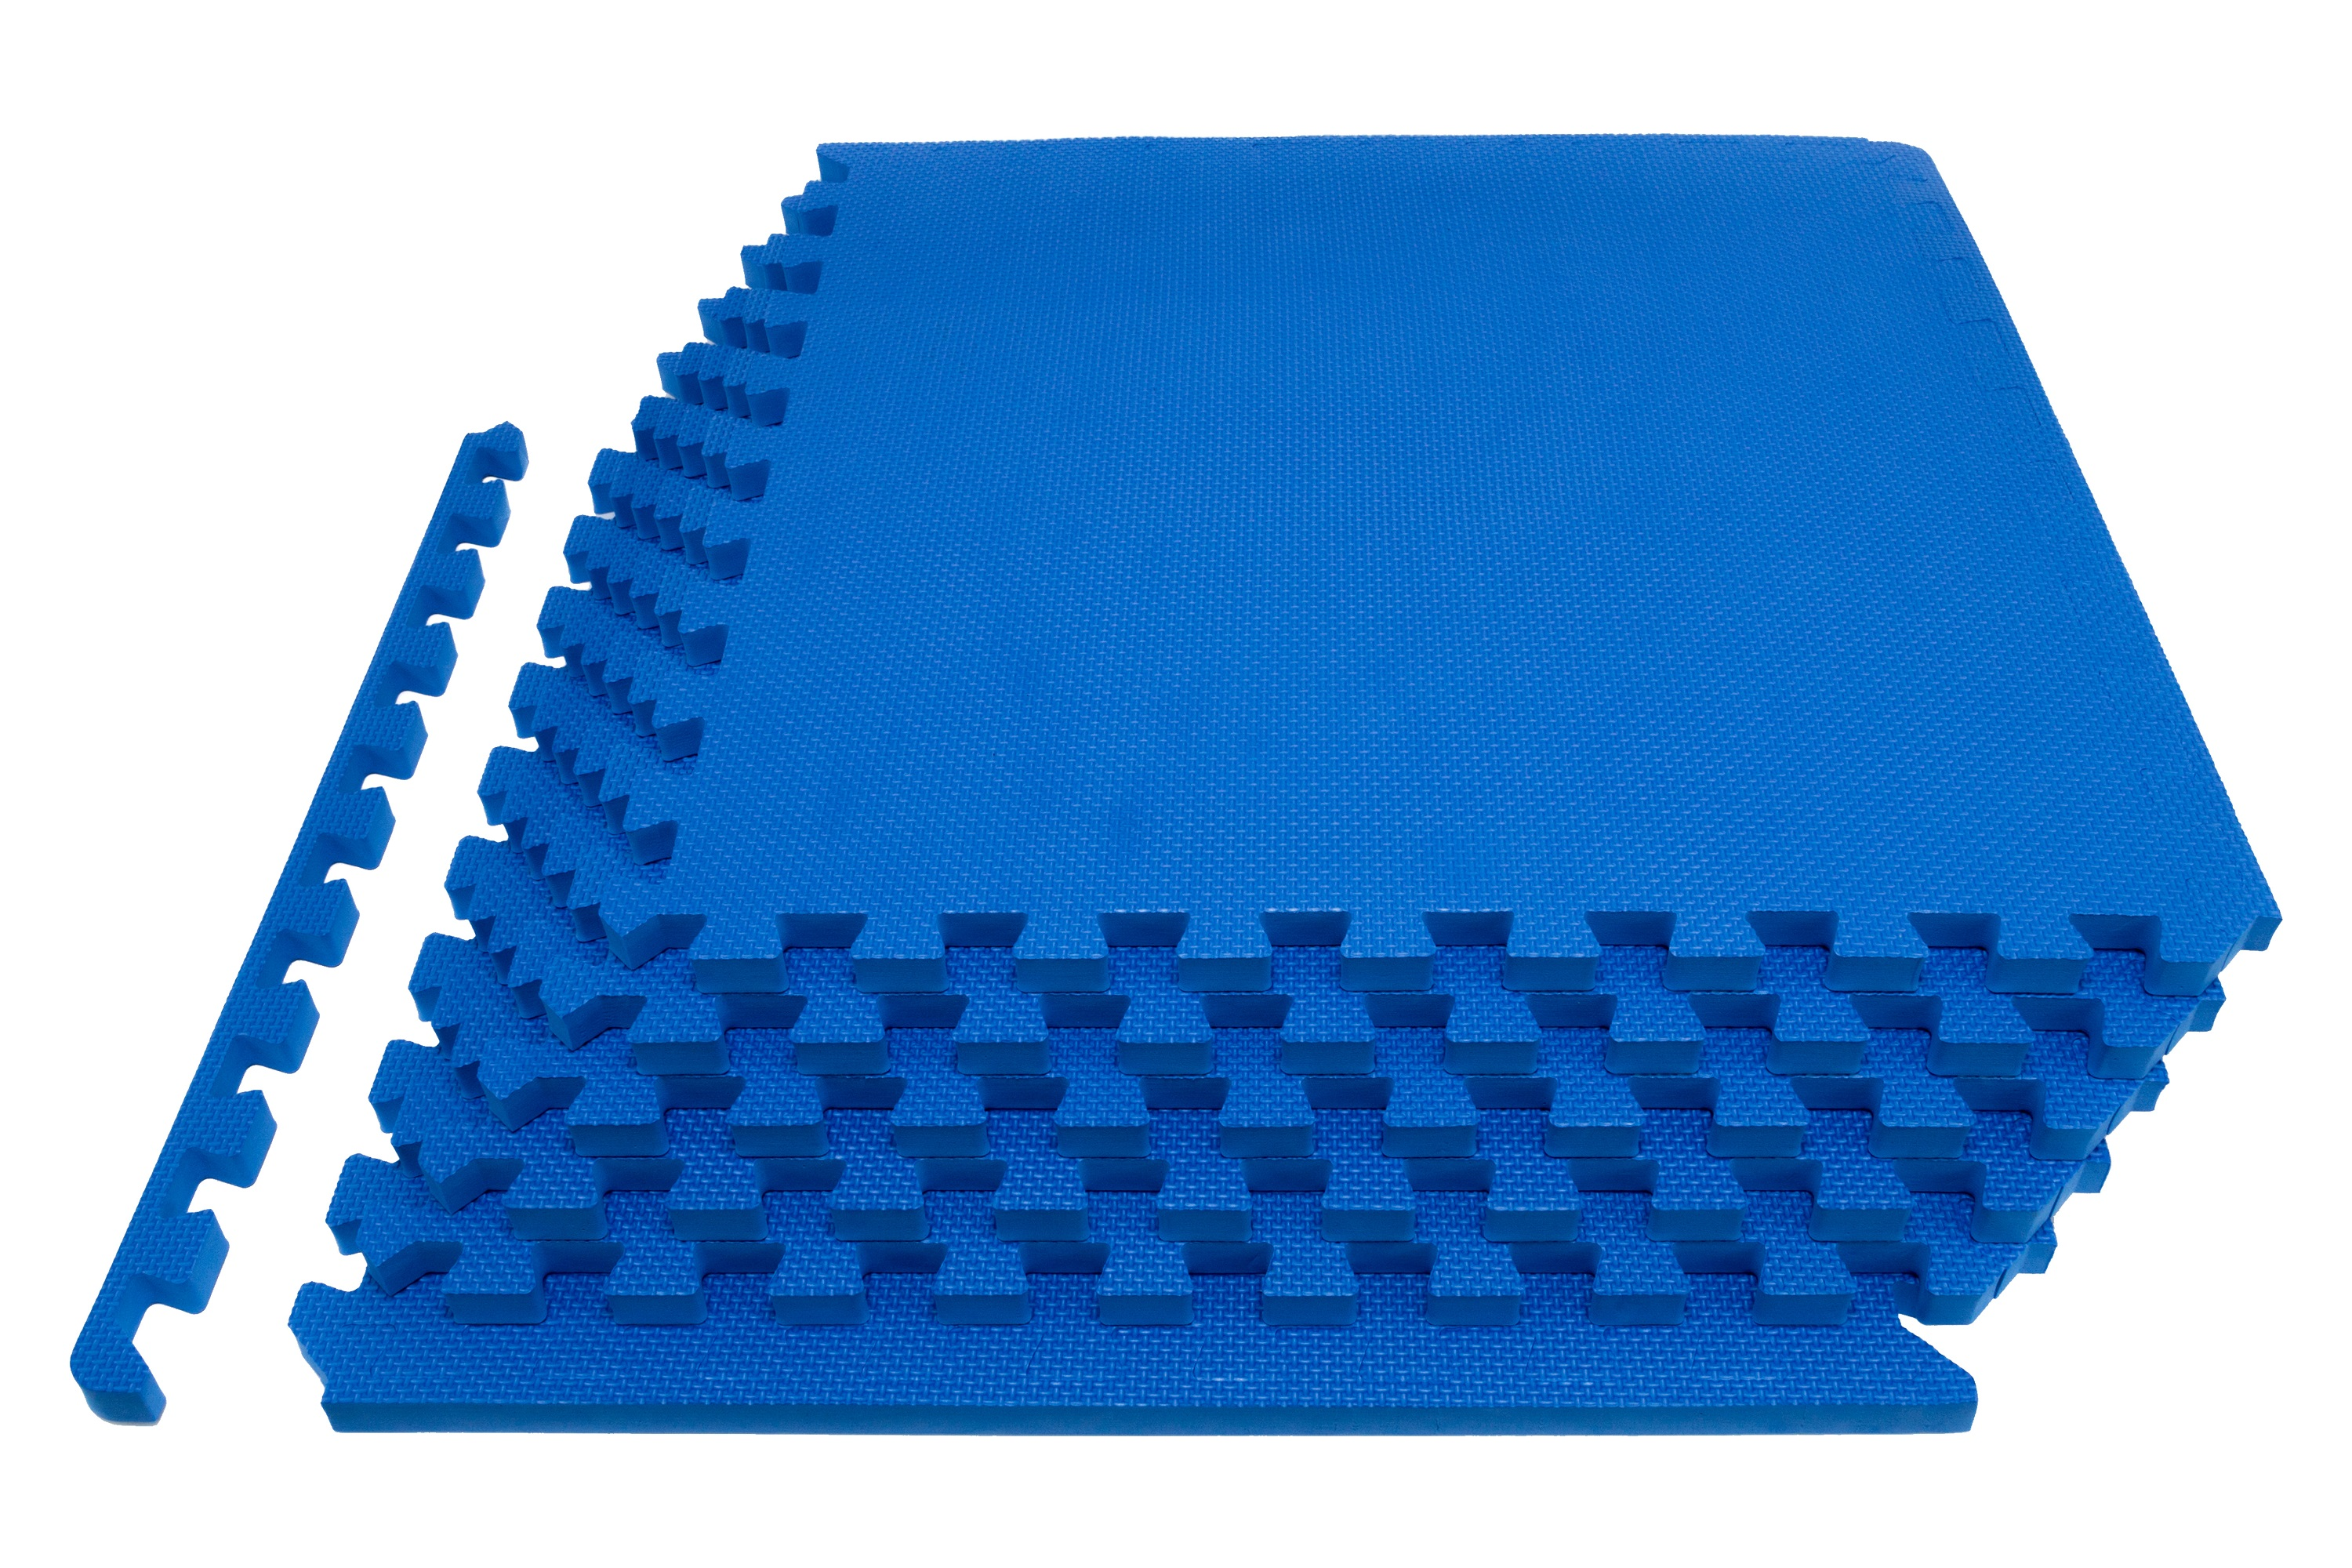 ProSource-Puzzle-Exercise-Interlocking-Eva-Foam-Tiles-Floor-Work-Gym-Mat